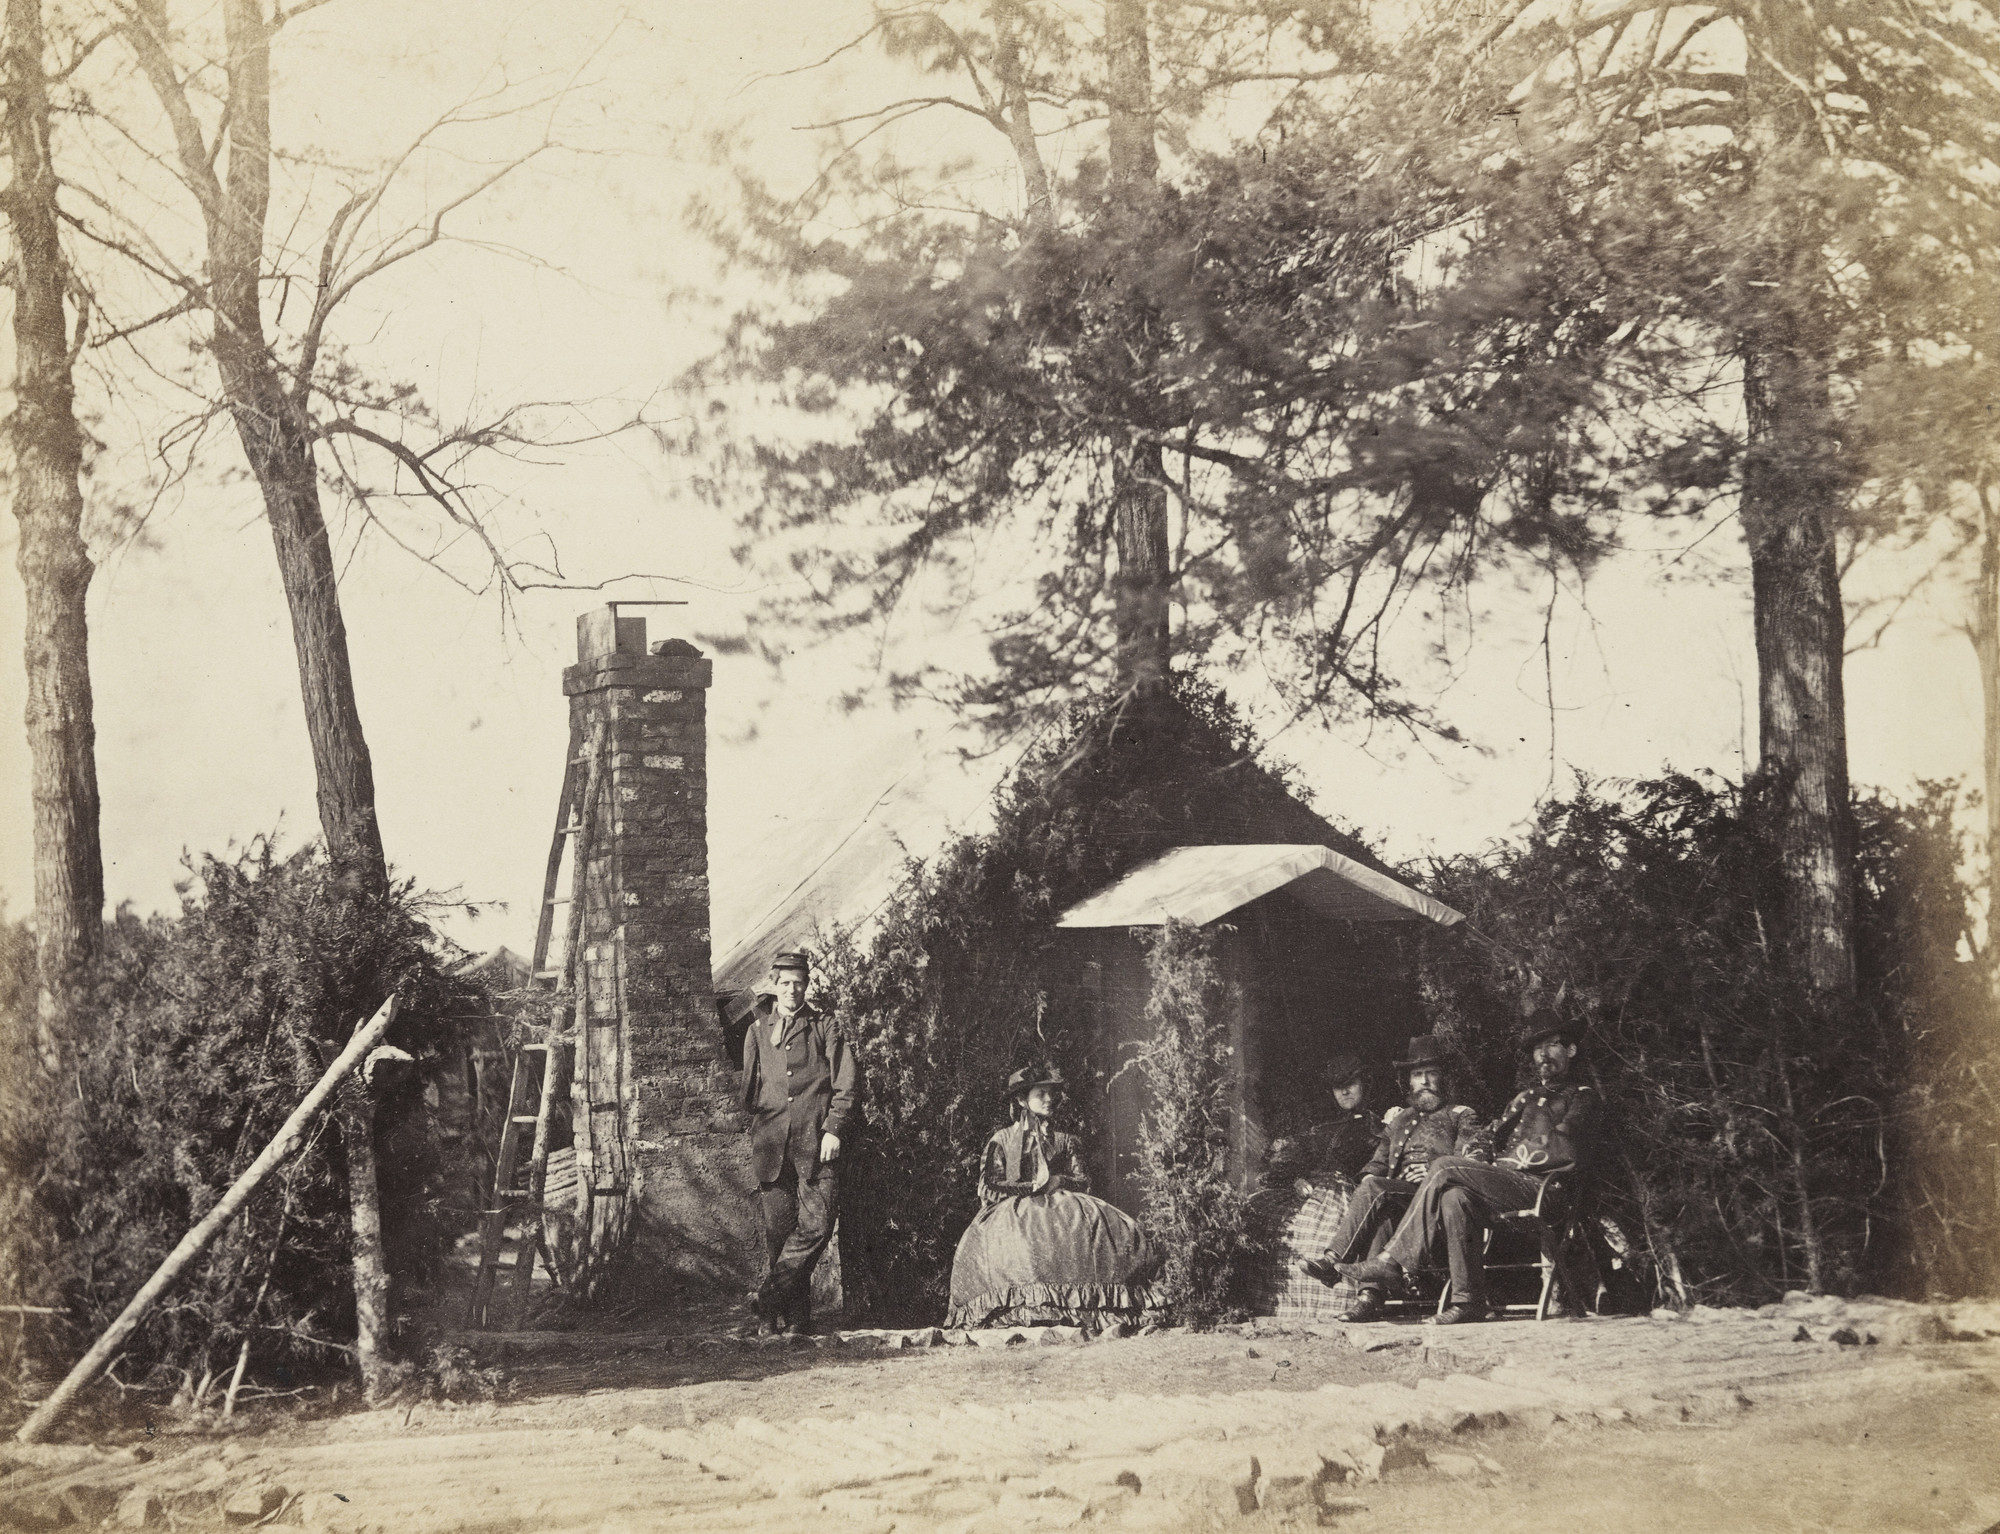 Alexander Gardner, Timothy O'Sullivan. Camp Architecture, Brandy Station, Virginia. January, 1864